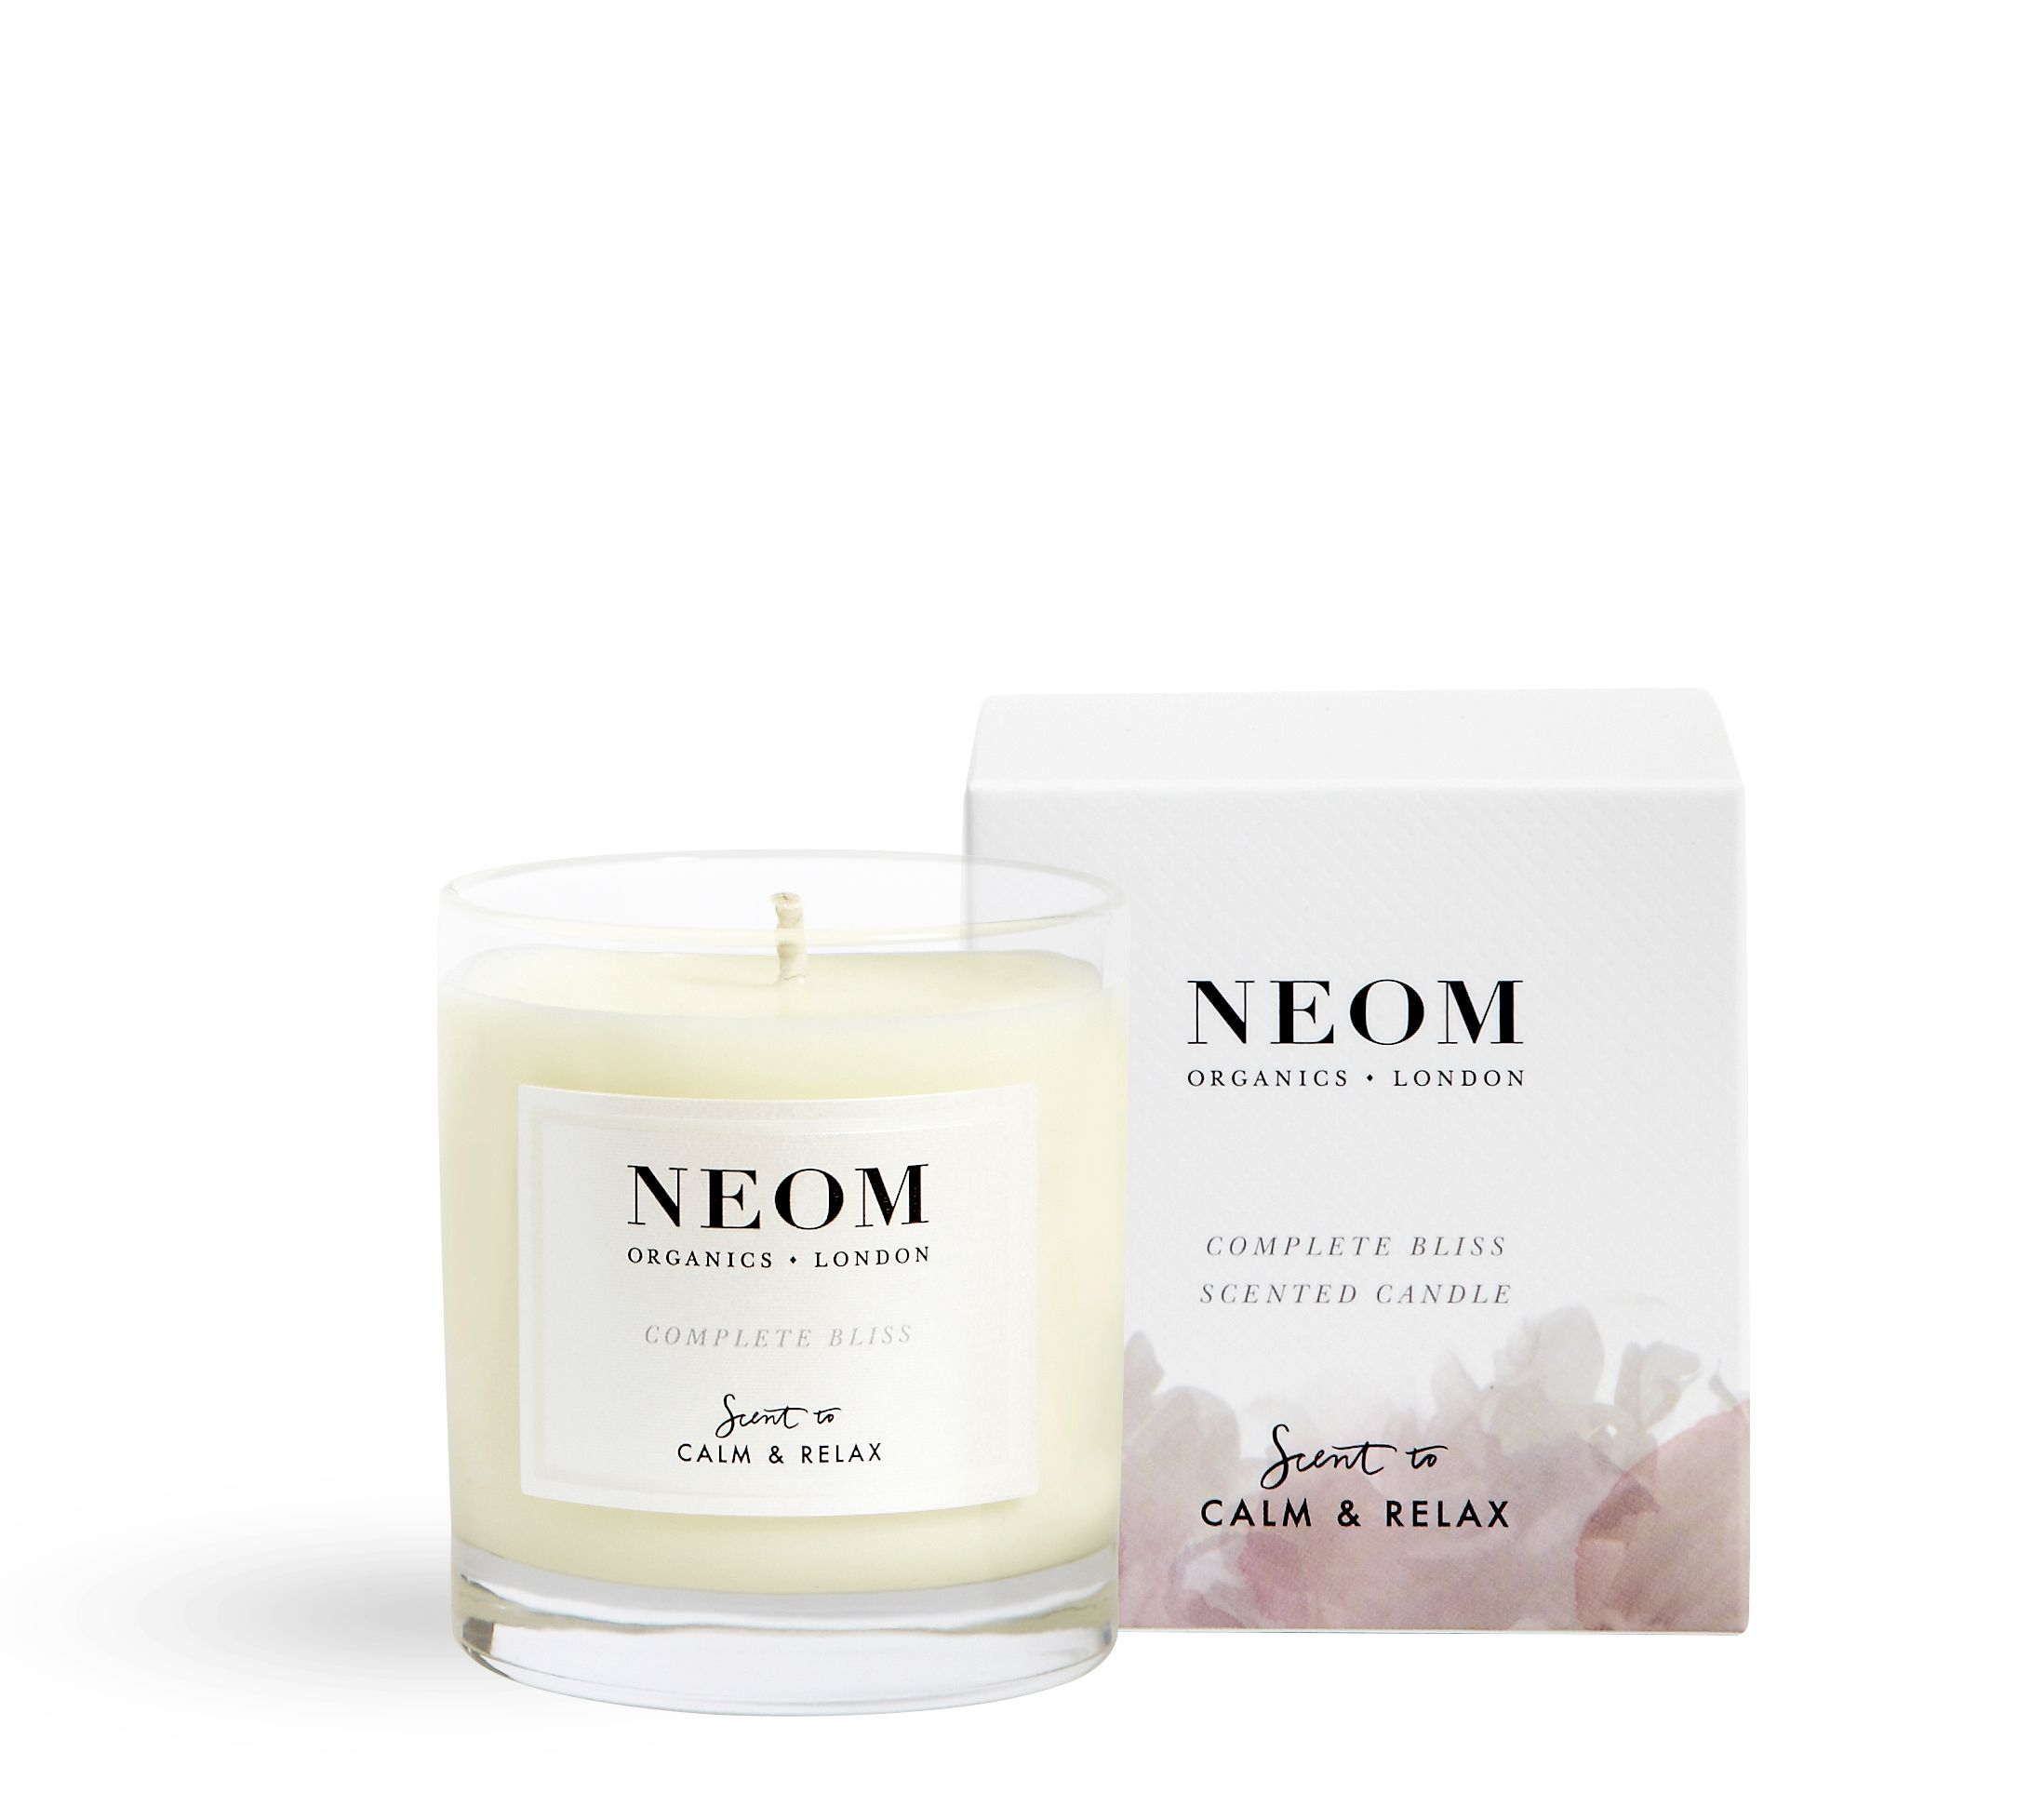 Image of Neom Complete Bliss Scented Candle 1 Wick 185g